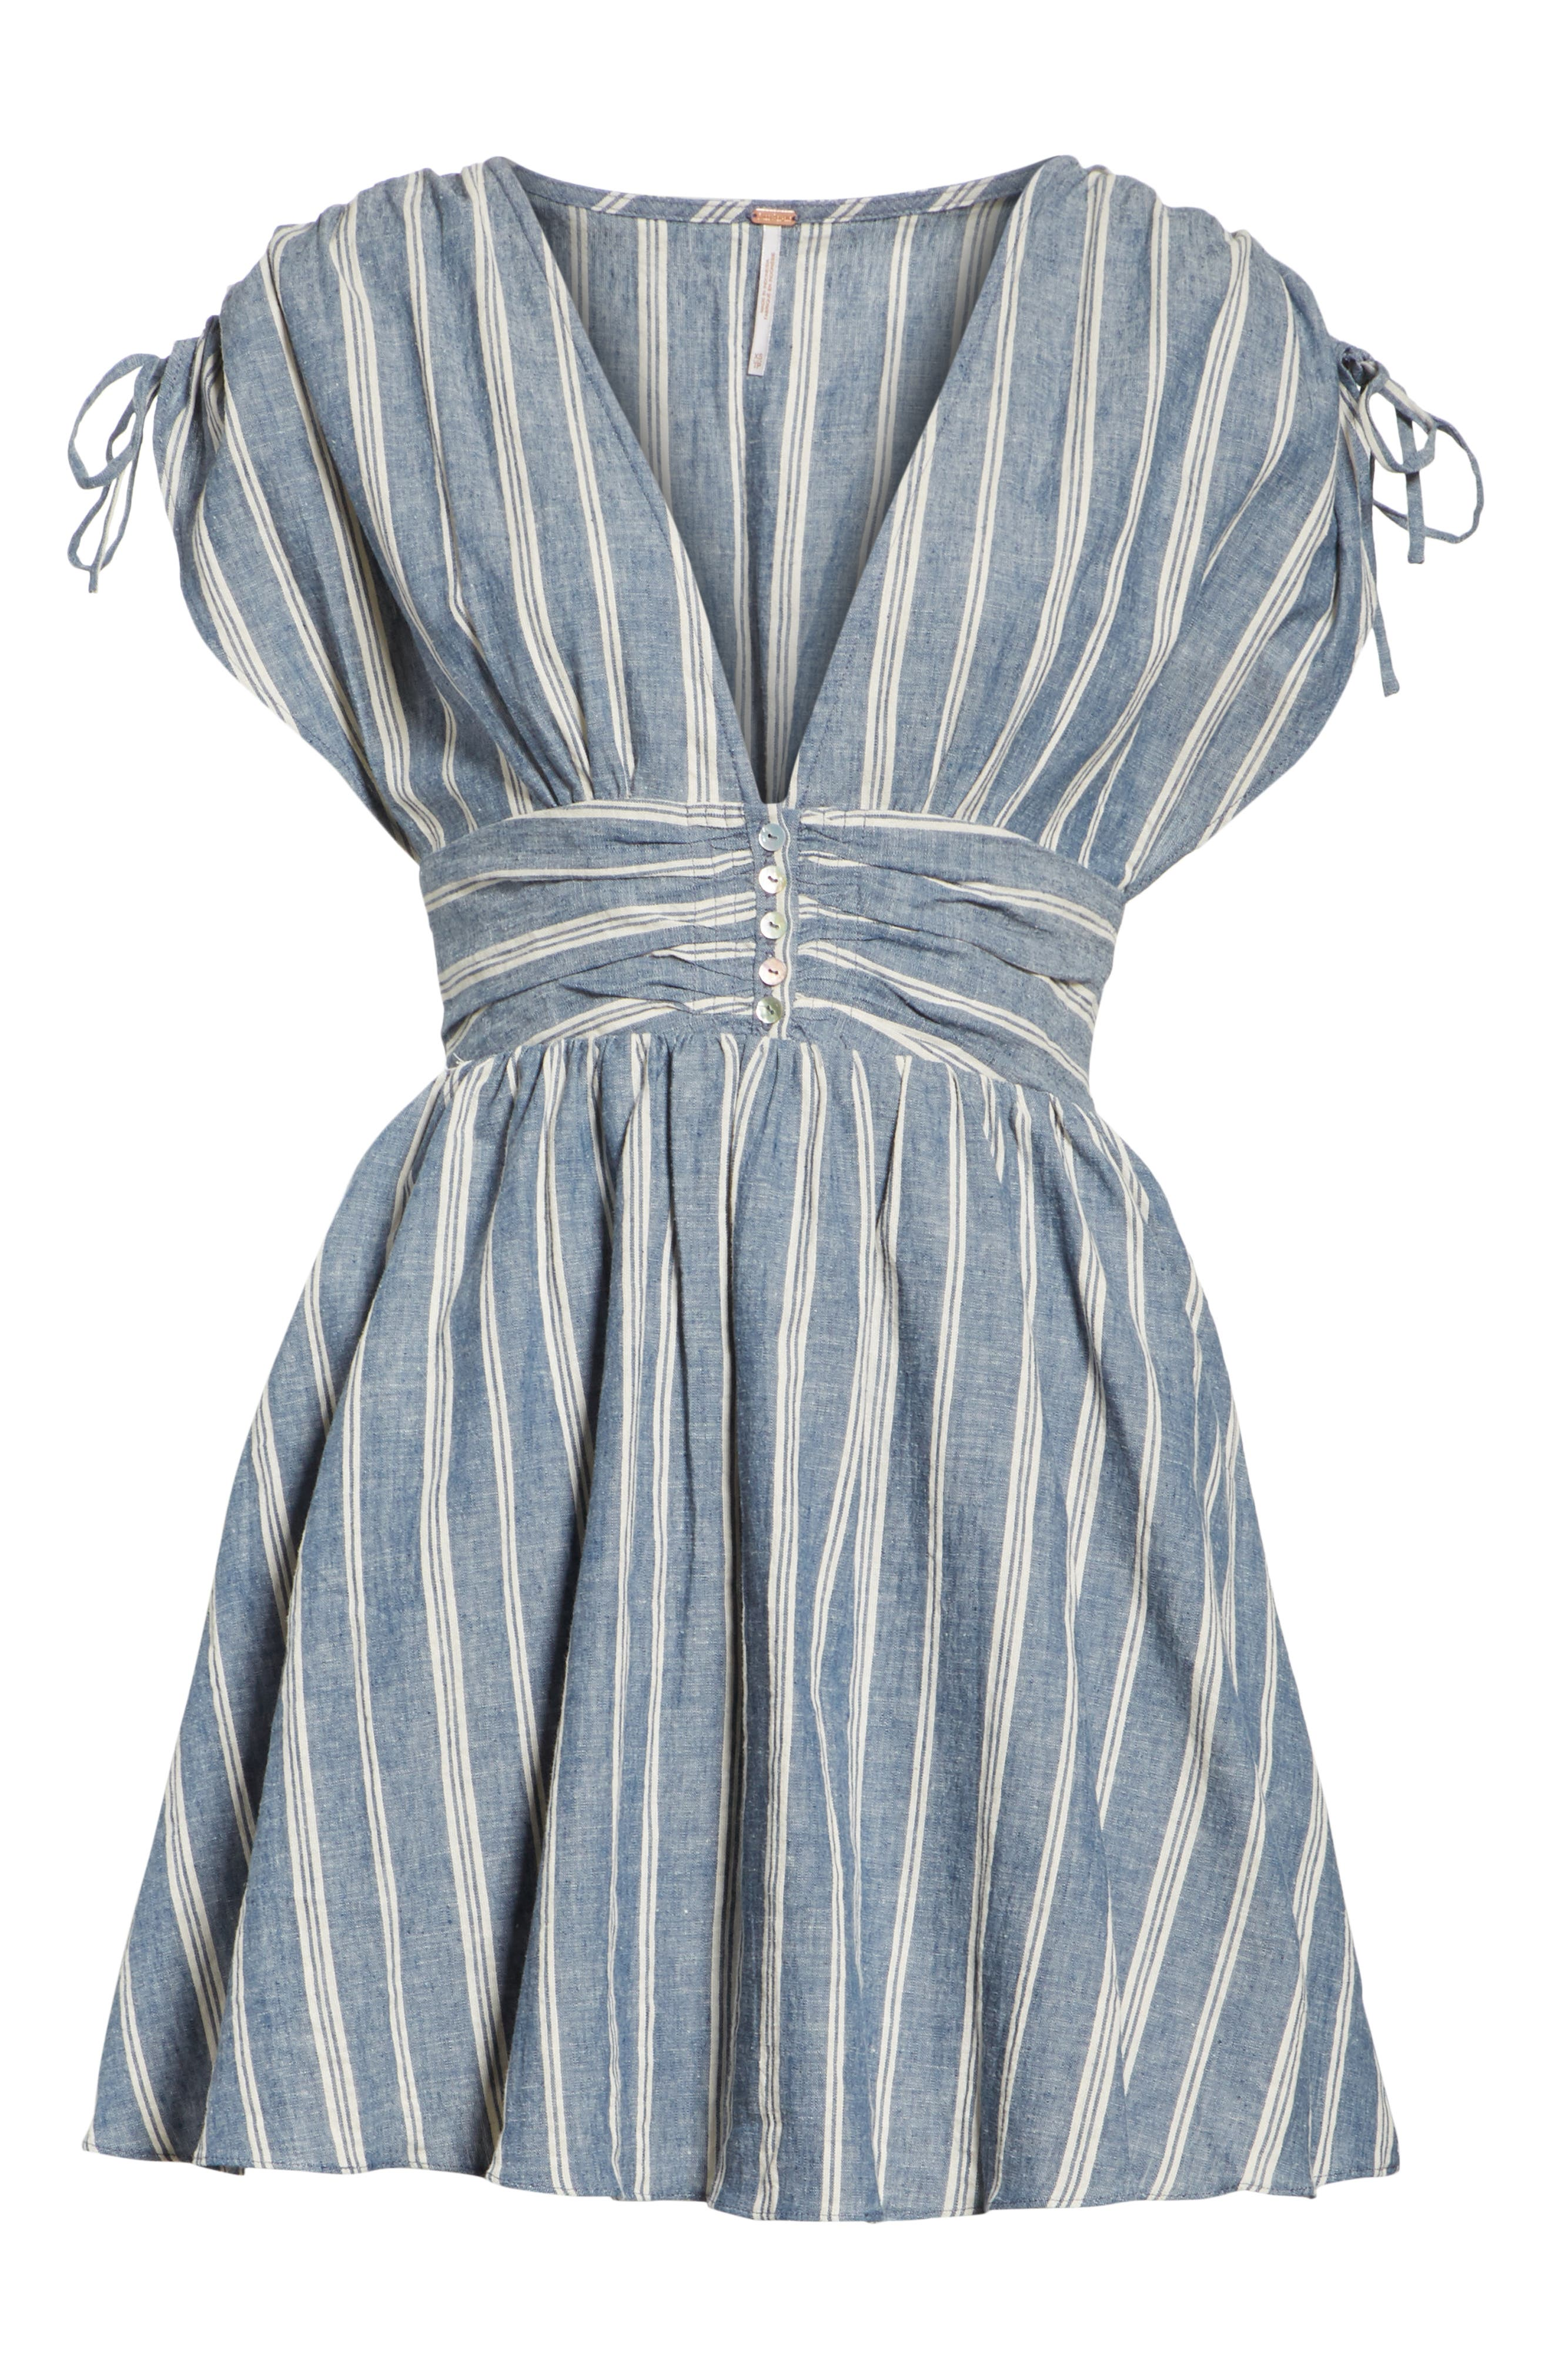 FREE PEOPLE,                             Roll the Dice Stripe Dress,                             Alternate thumbnail 7, color,                             400